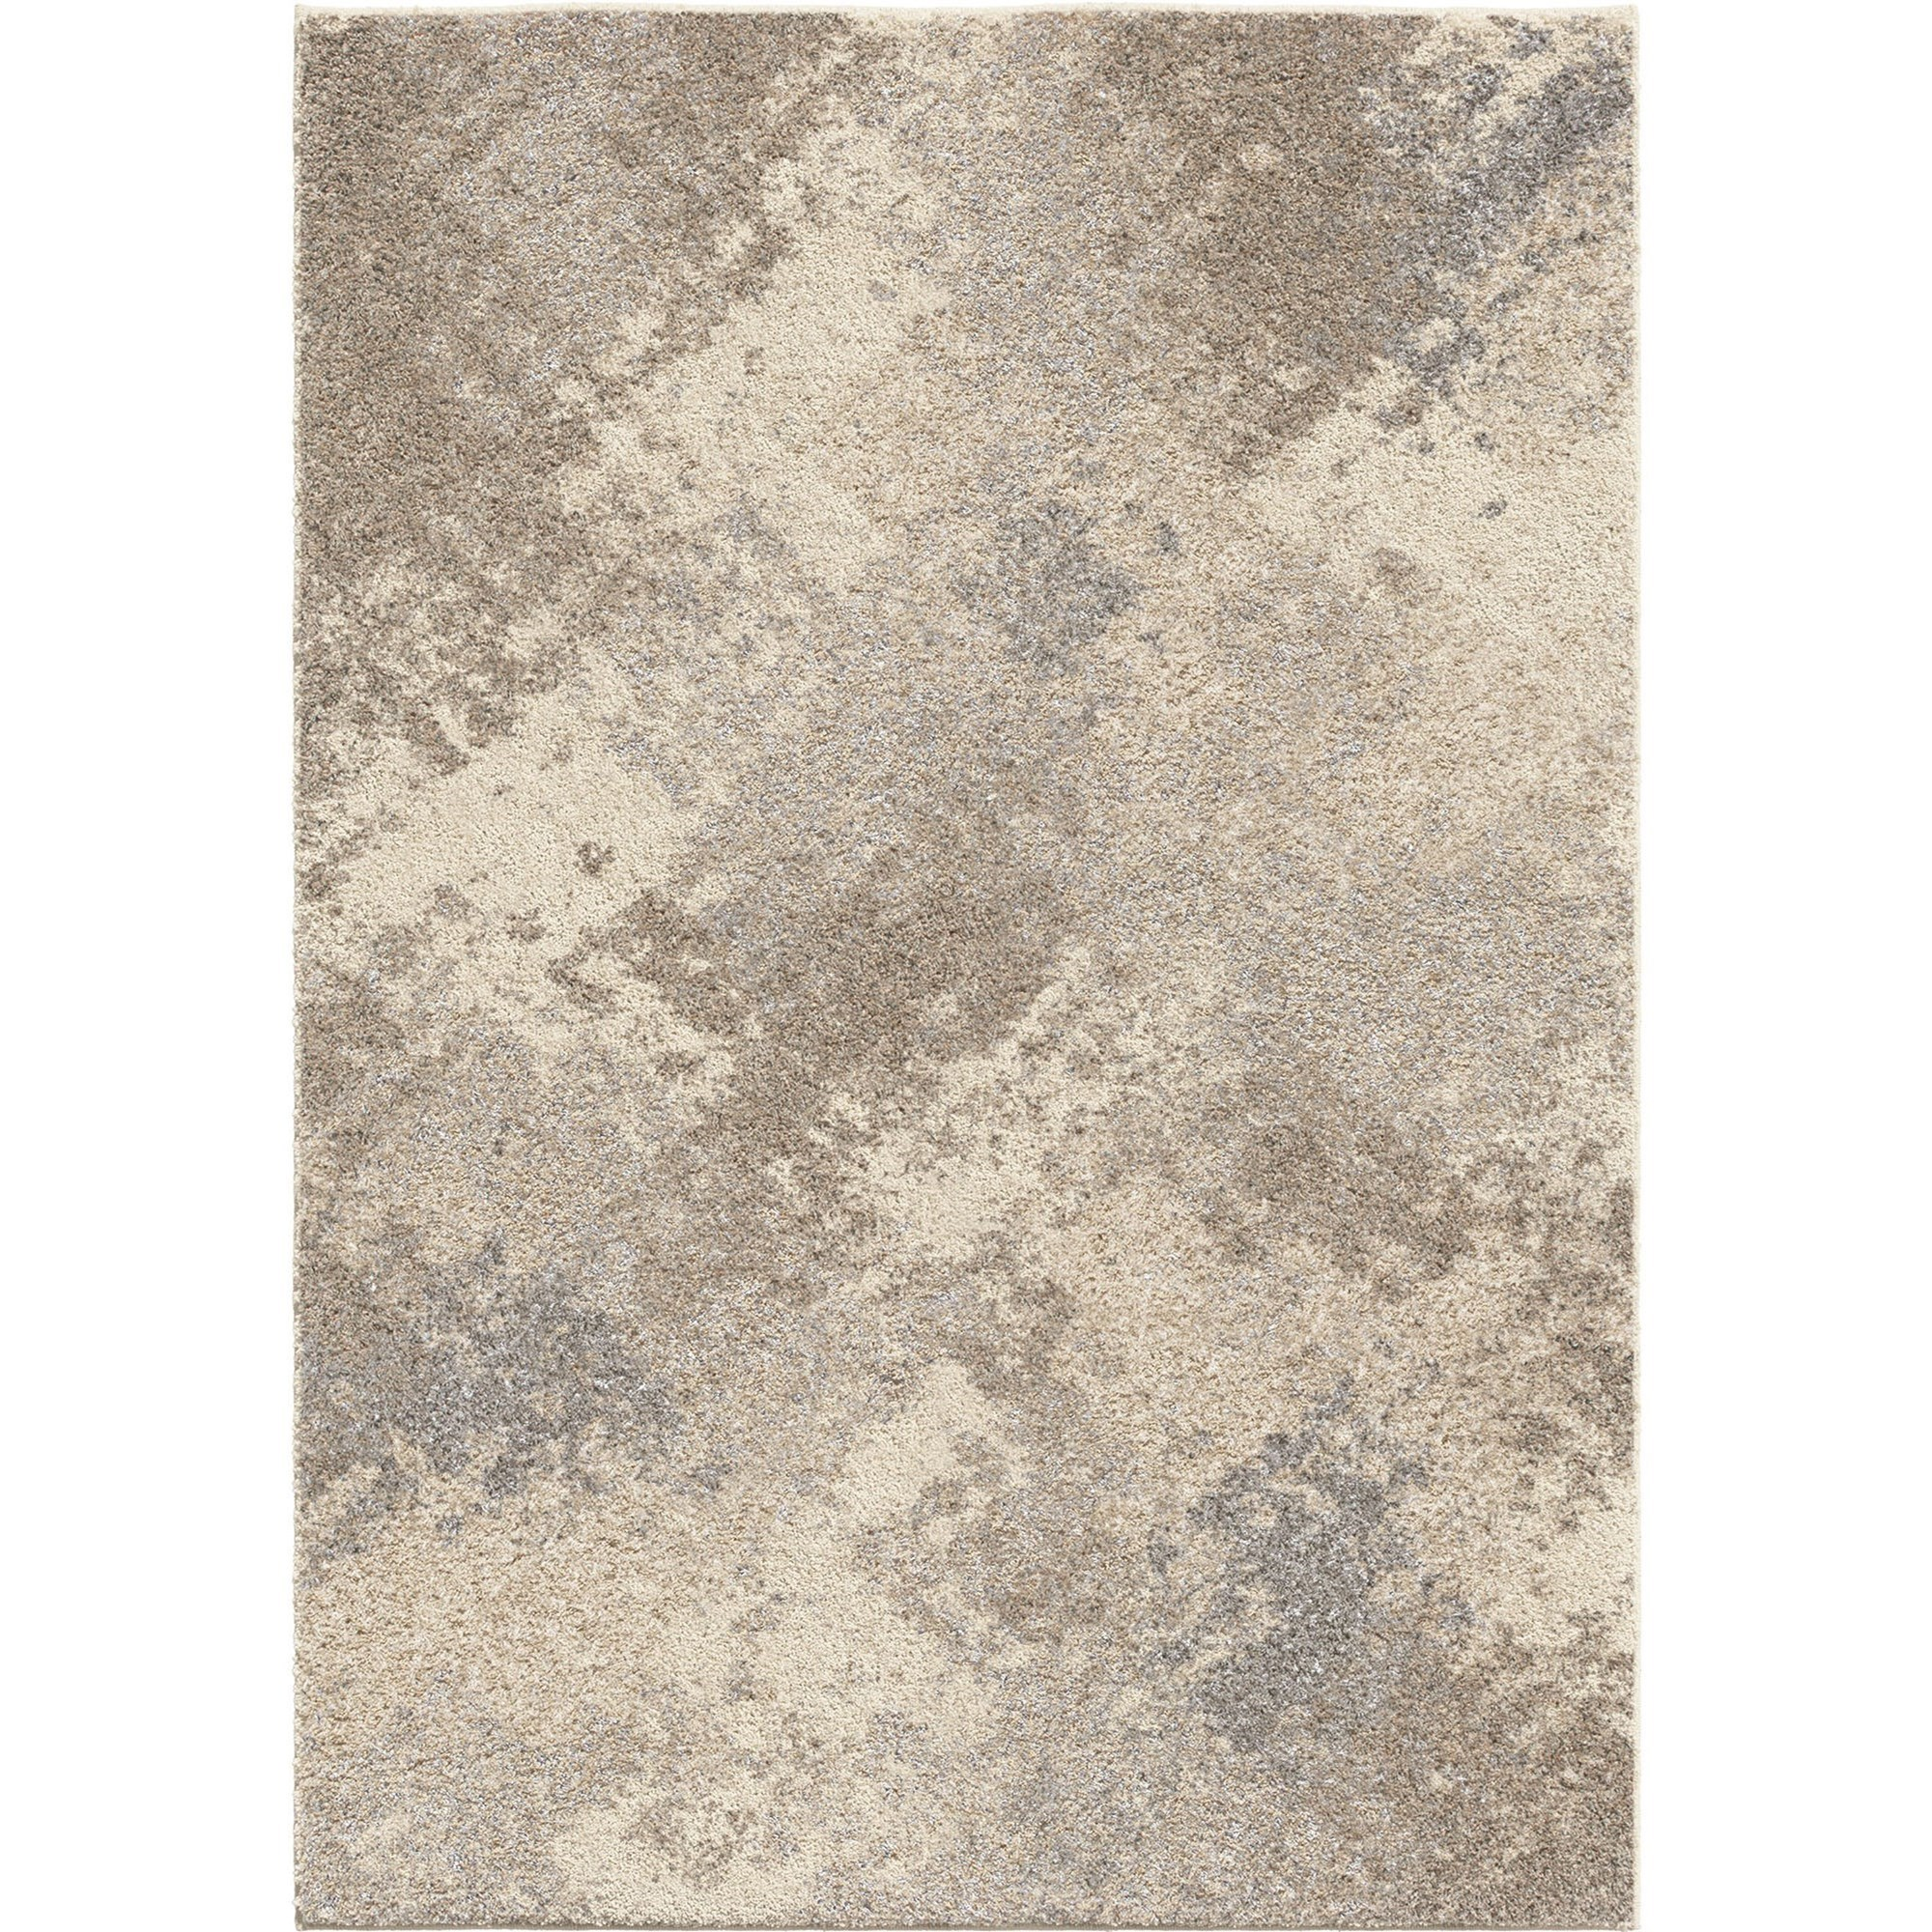 Airhaven Contemporary 8x10 Area Rug in Cream/Grey by Armen Living at Michael Alan Furniture & Design